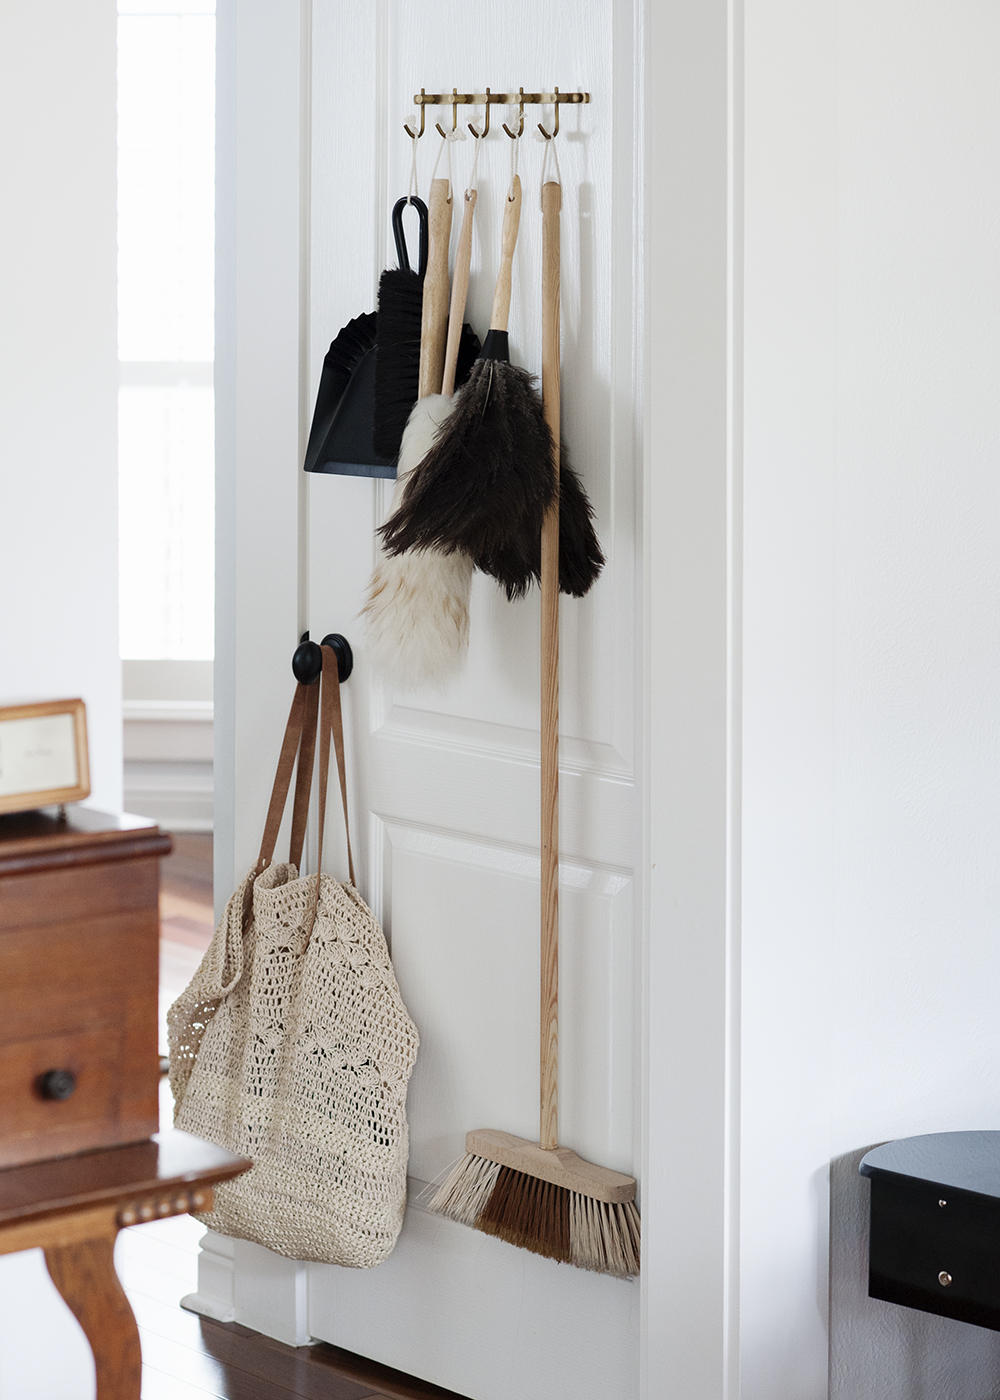 Cleaning doesn't seem as much of a chore when you display really pretty brooms and dusters.